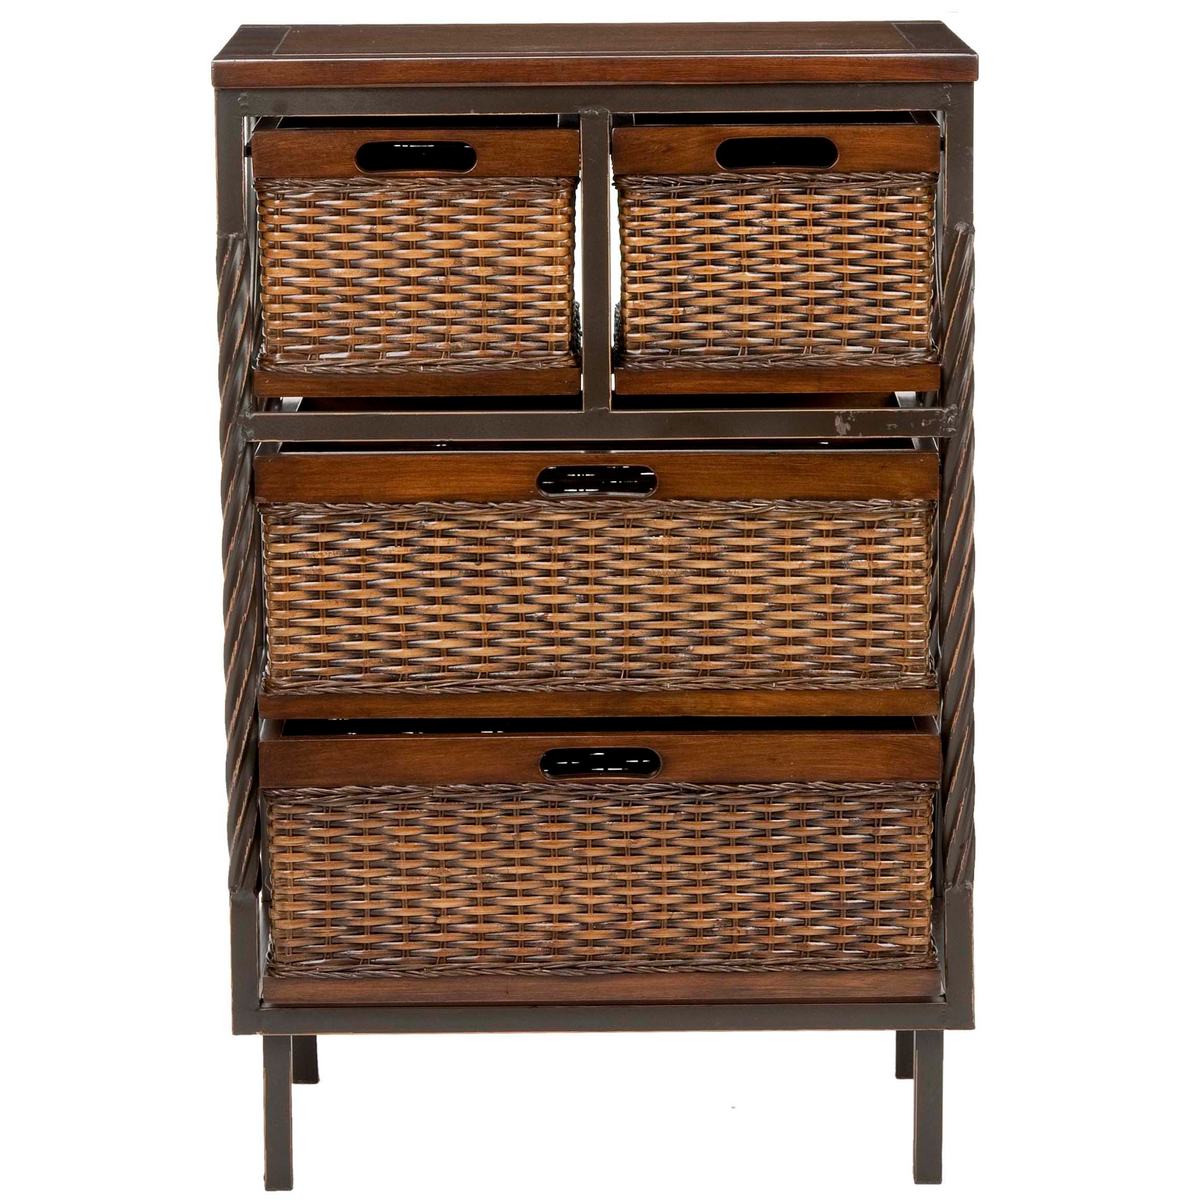 Dark Teak Andrew Storge Unit with Rattan-Style Drawers